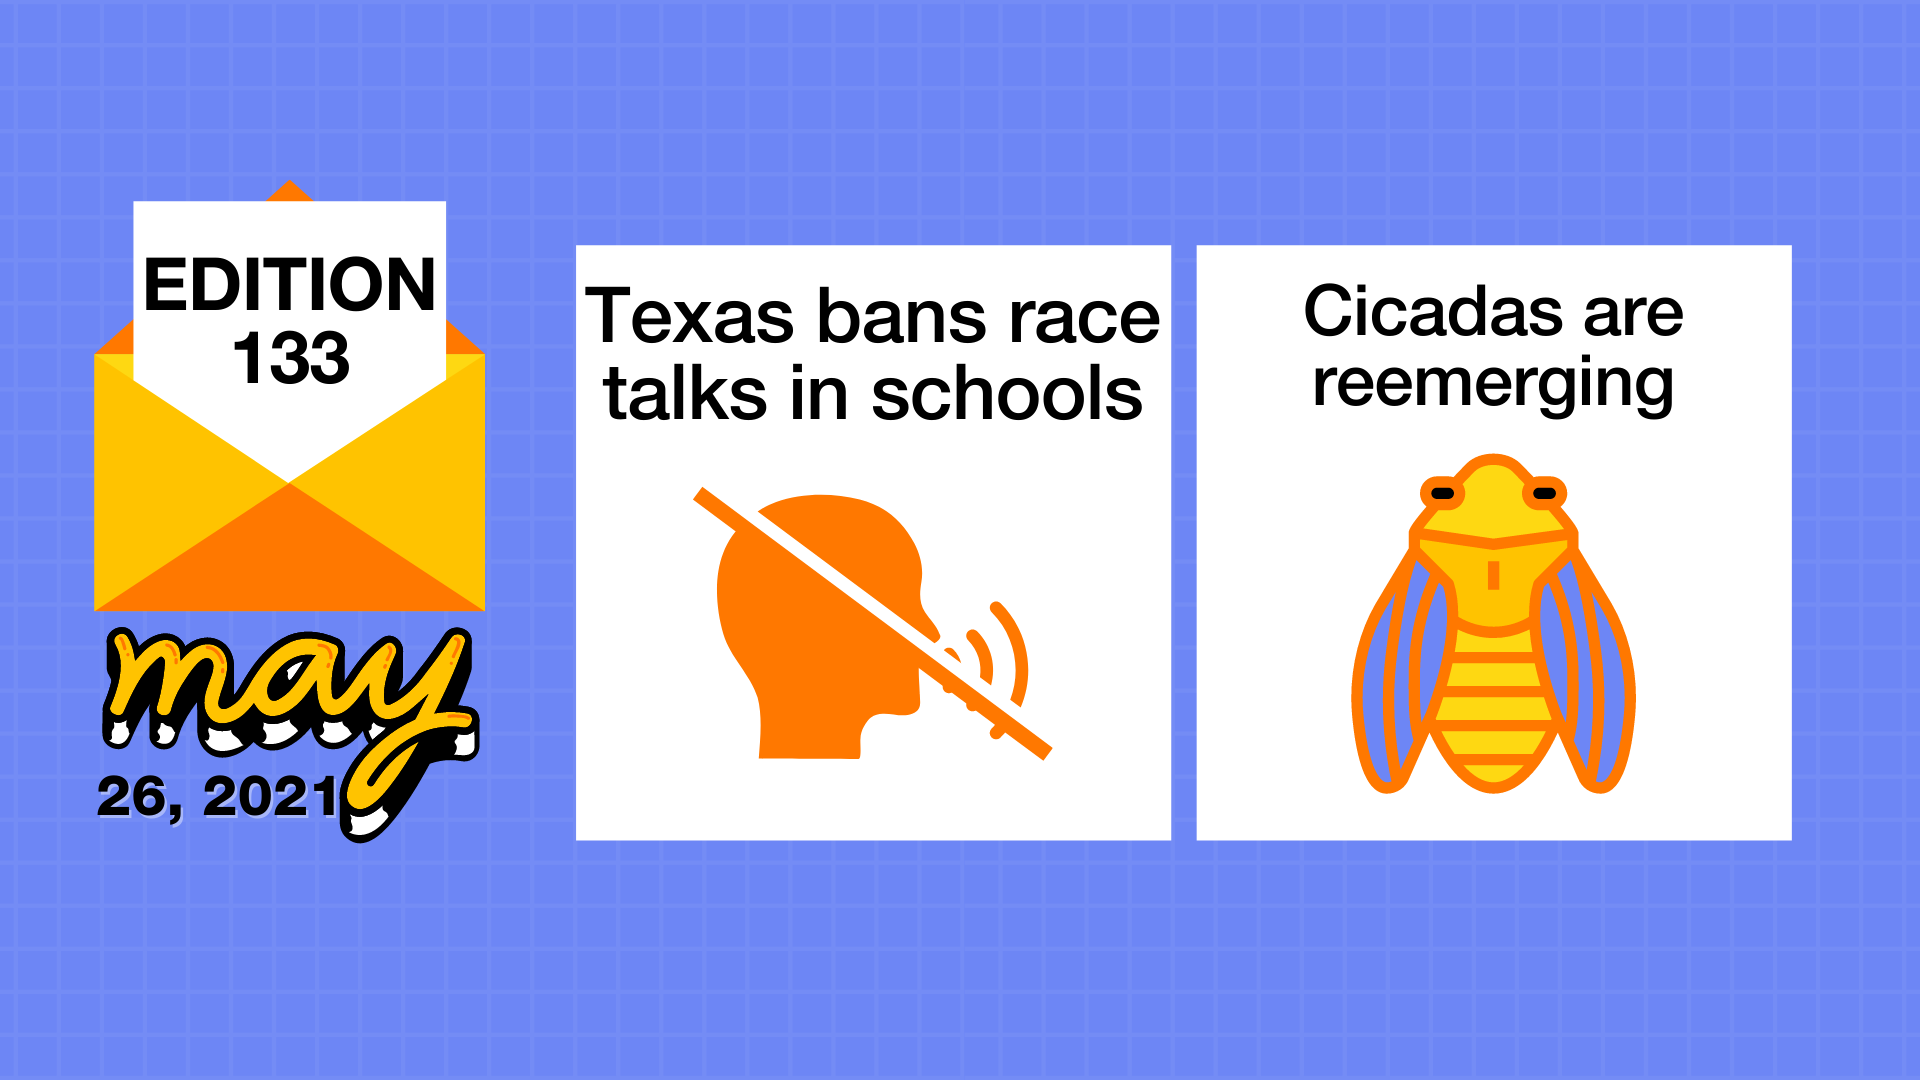 Texas bans racism education and Cicadas reemerge in the U.S.